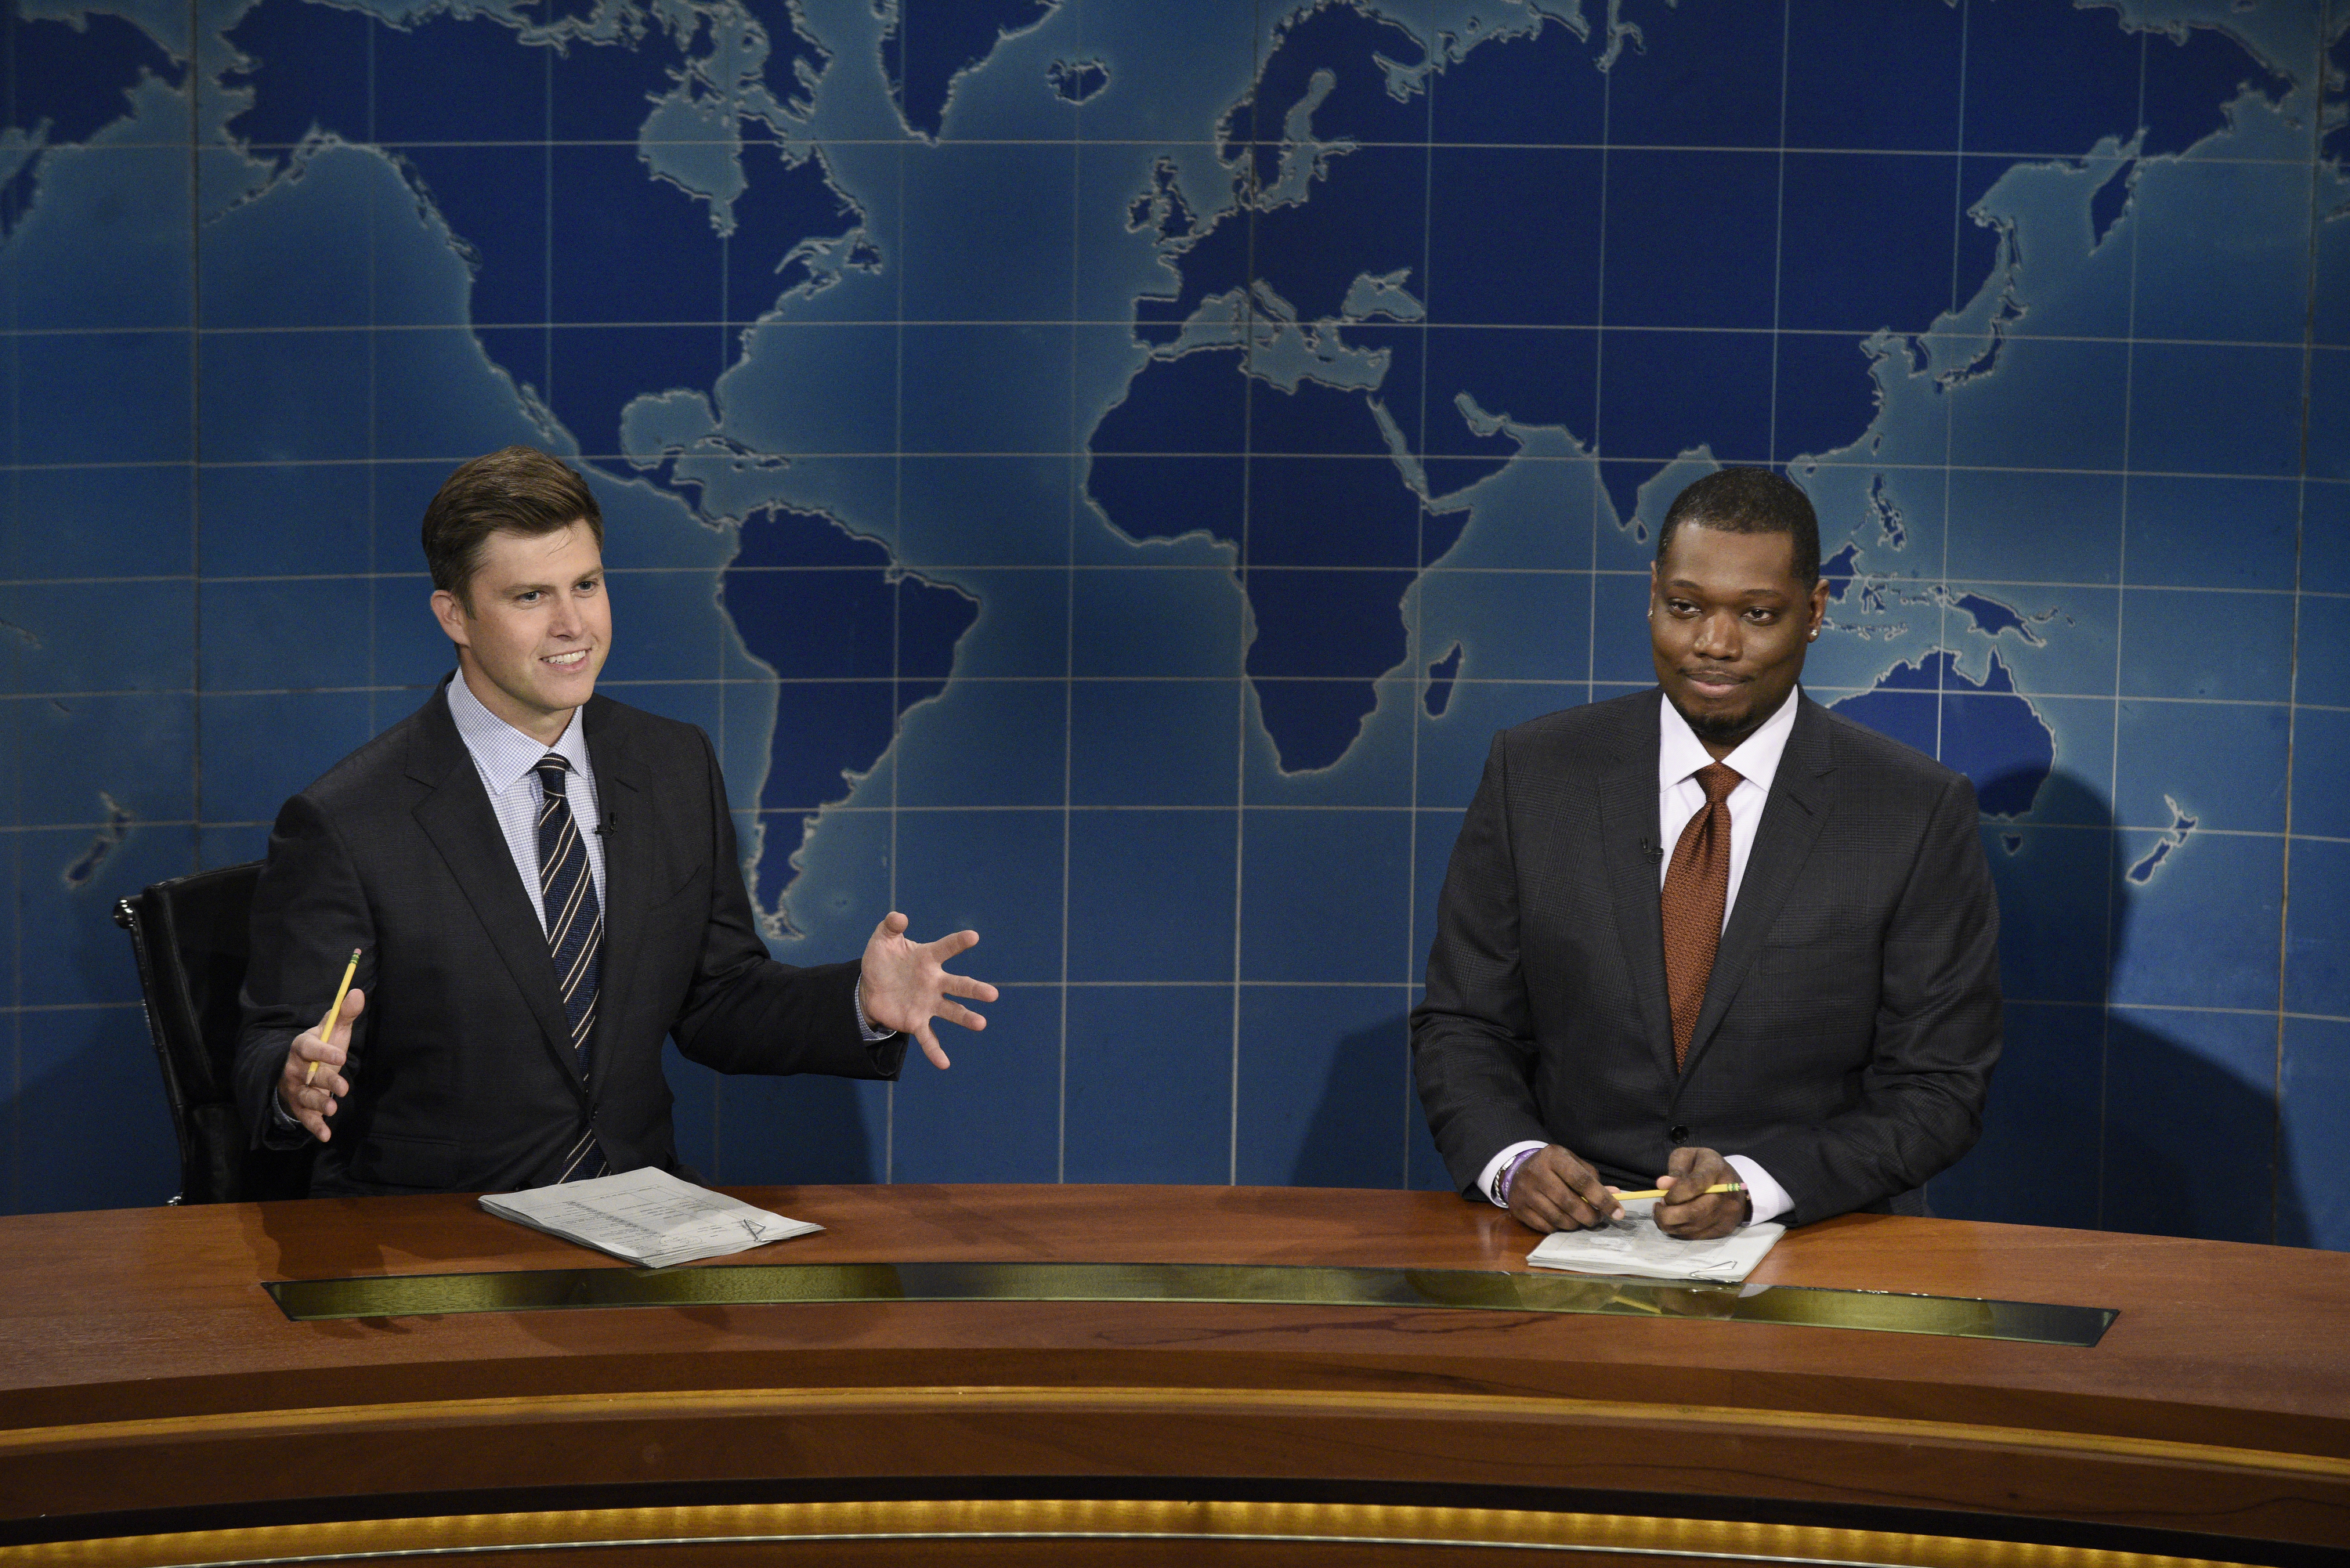 Colin Jost and Michael Che during Saturday Night Live's Weekend Update on October 3, 2020